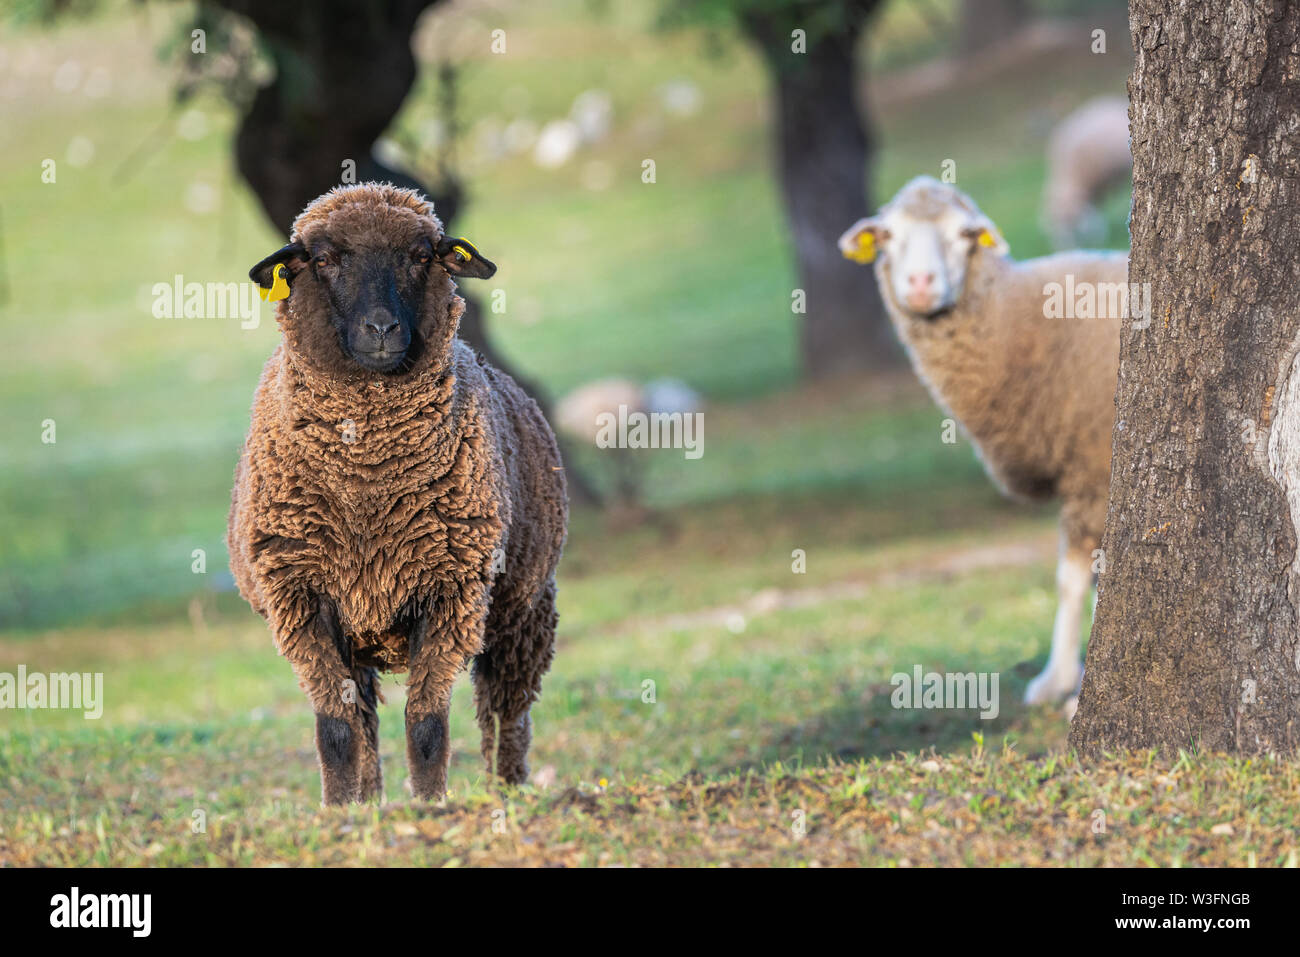 brown sheep ewe looking directly at camera in the Spring - Stock Image